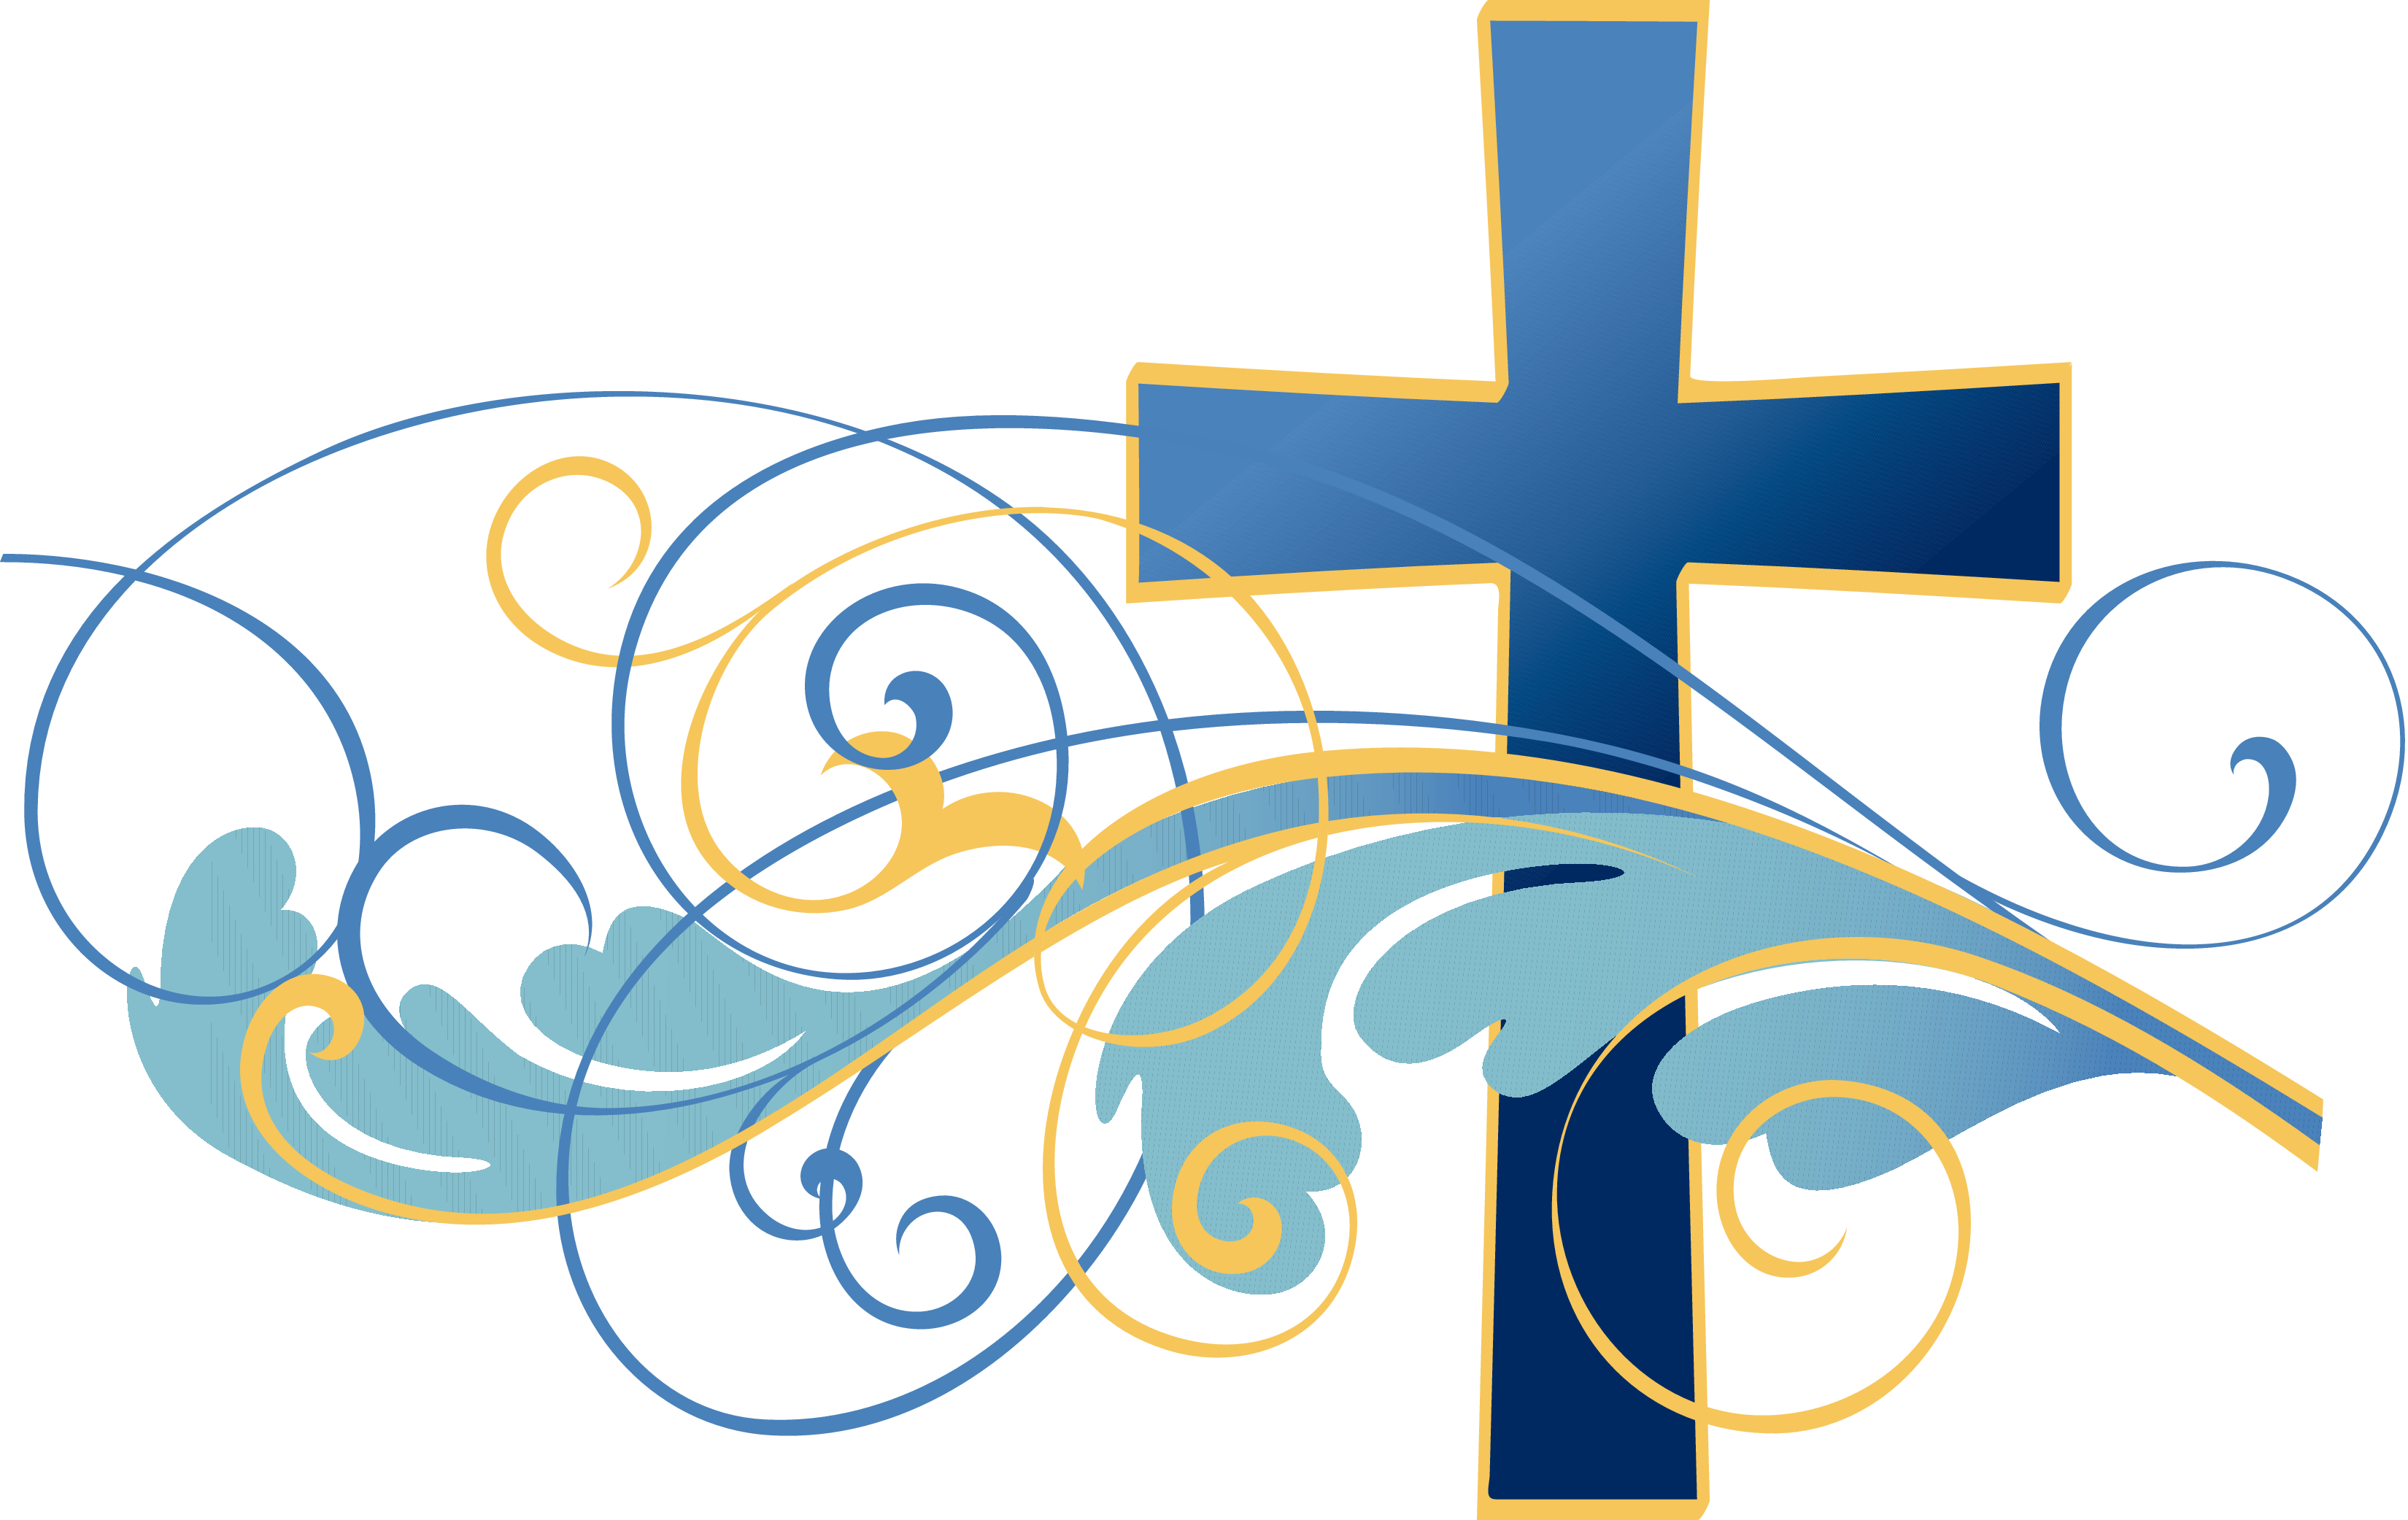 Catholic Baptism Cross Clipart Clipart P-Catholic Baptism Cross Clipart Clipart Panda Free Clipart Images-15